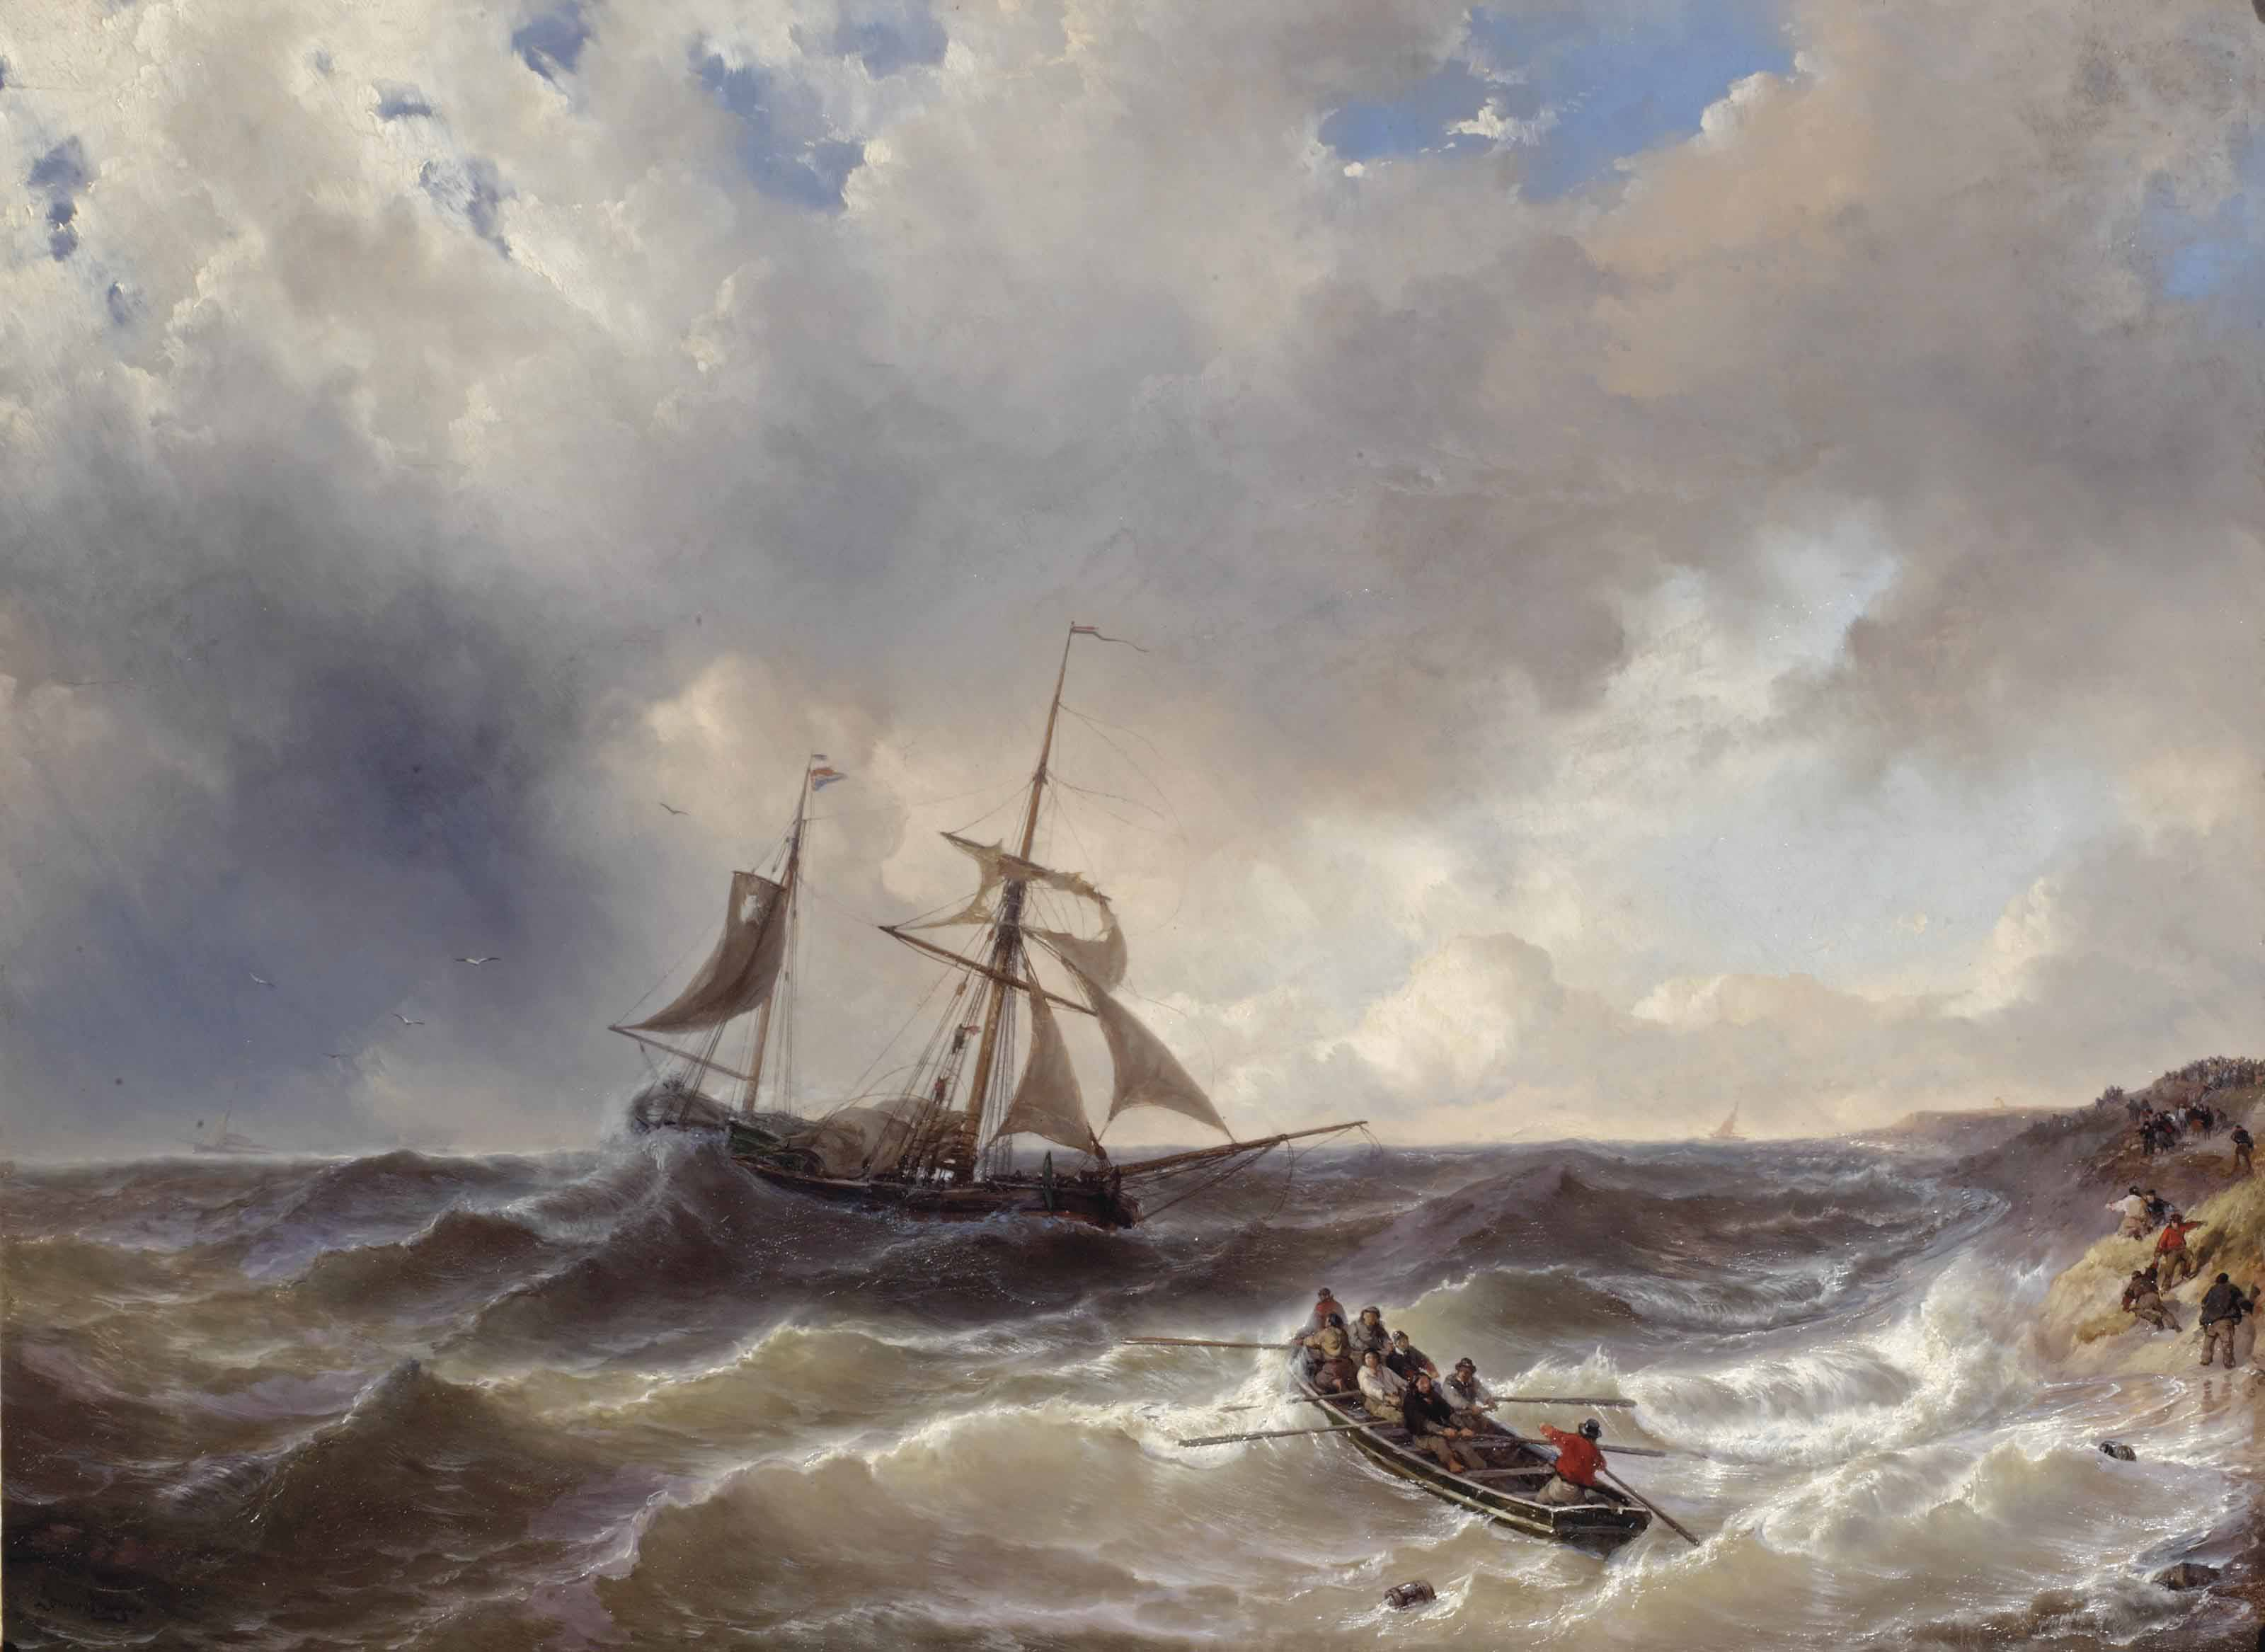 A two-master in choppy waters